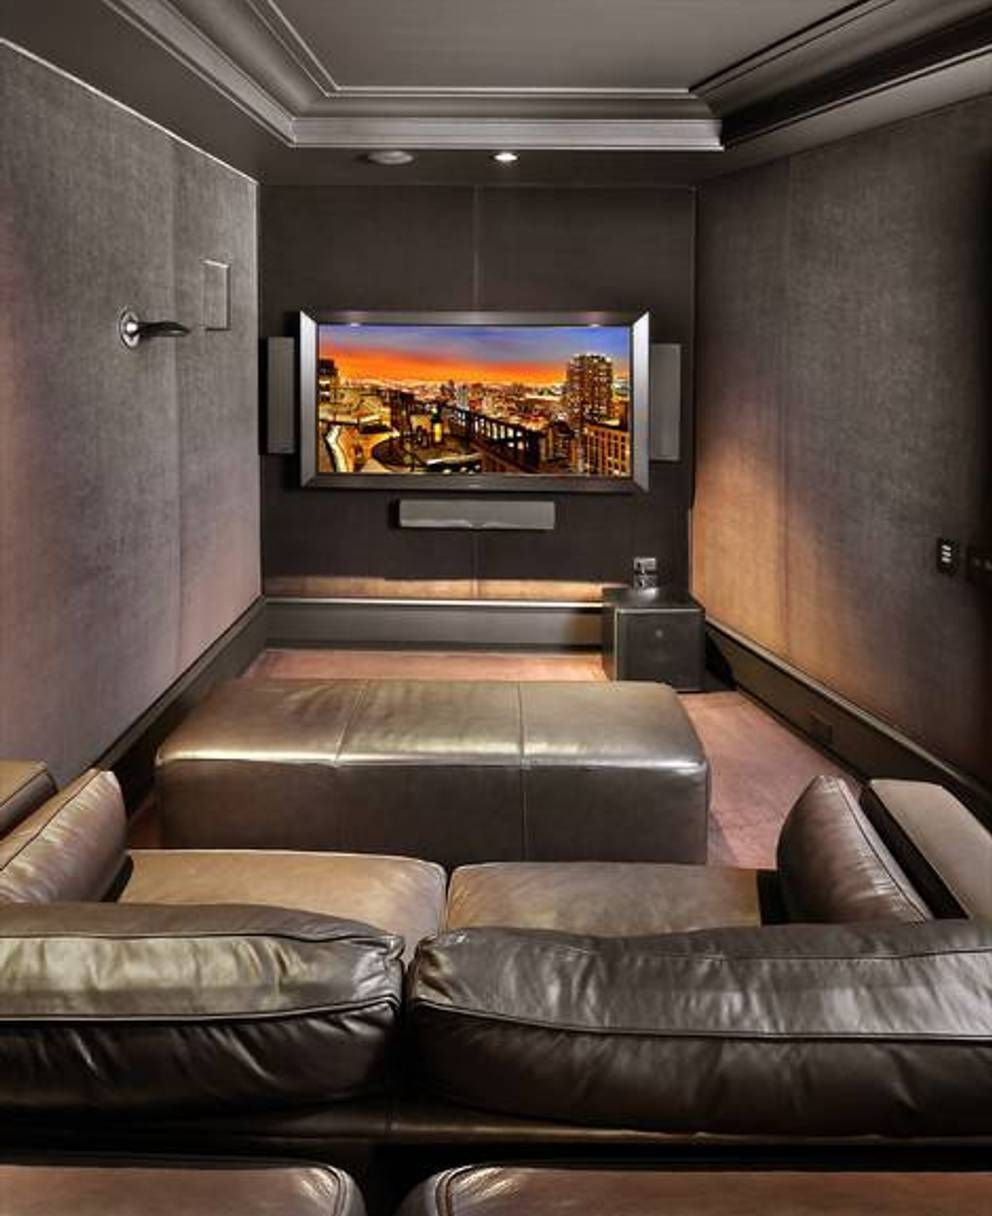 Home design and decor small home theater room ideas Theater rooms design ideas